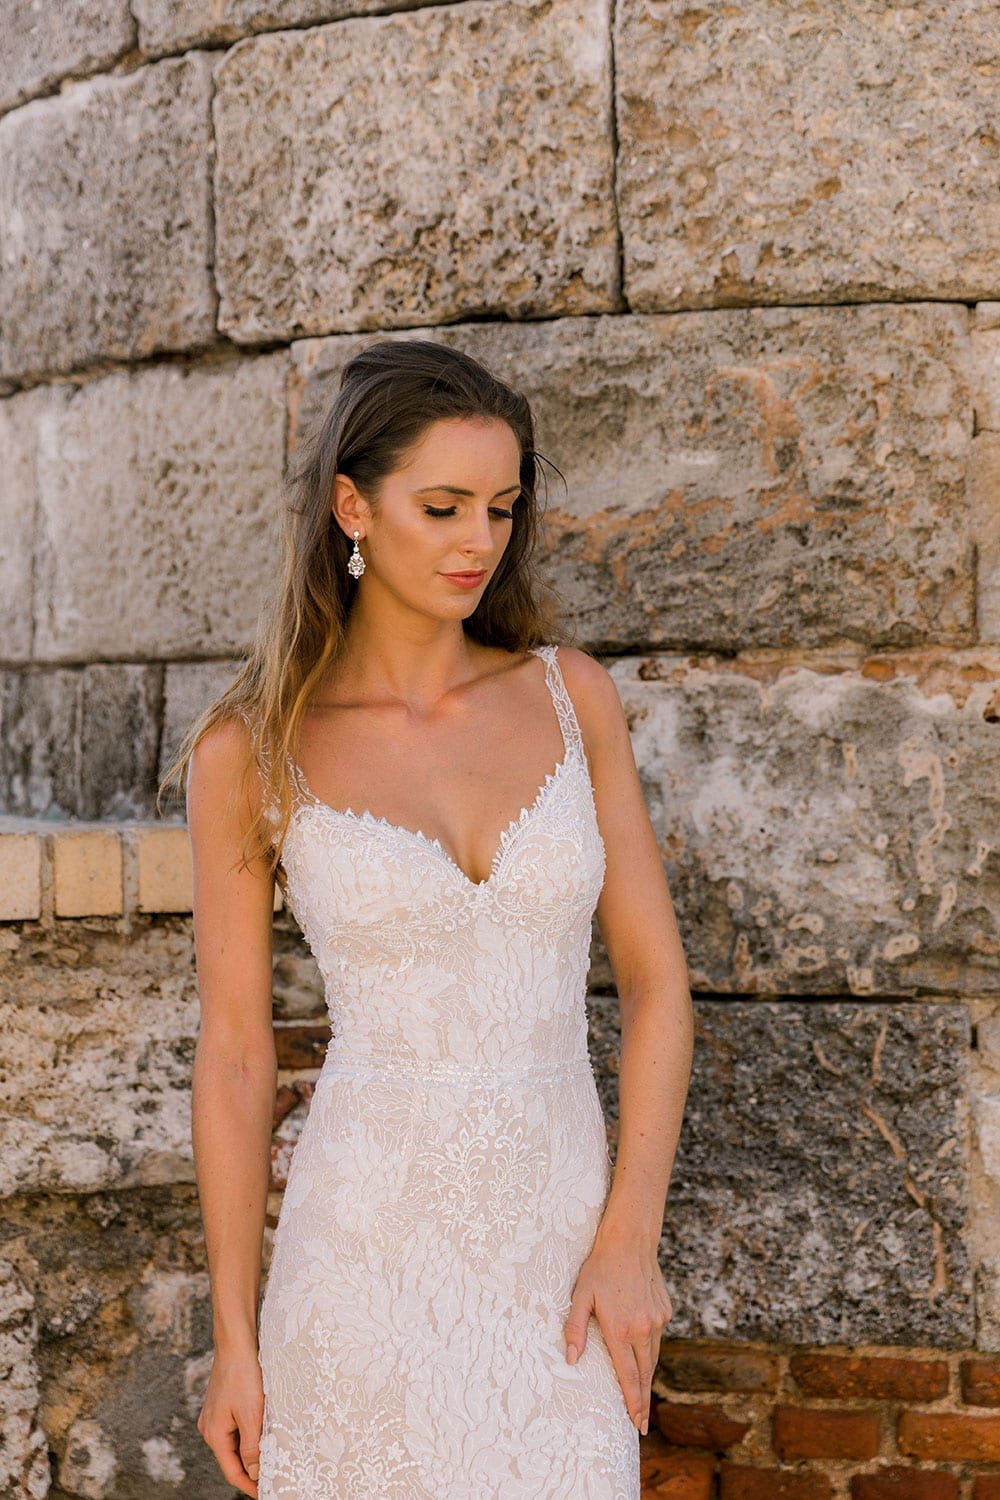 Model wearing Vinka Design Miriam Wedding Dress, a Beaded Lace Wedding Gown in front of large stone wall in Cuba